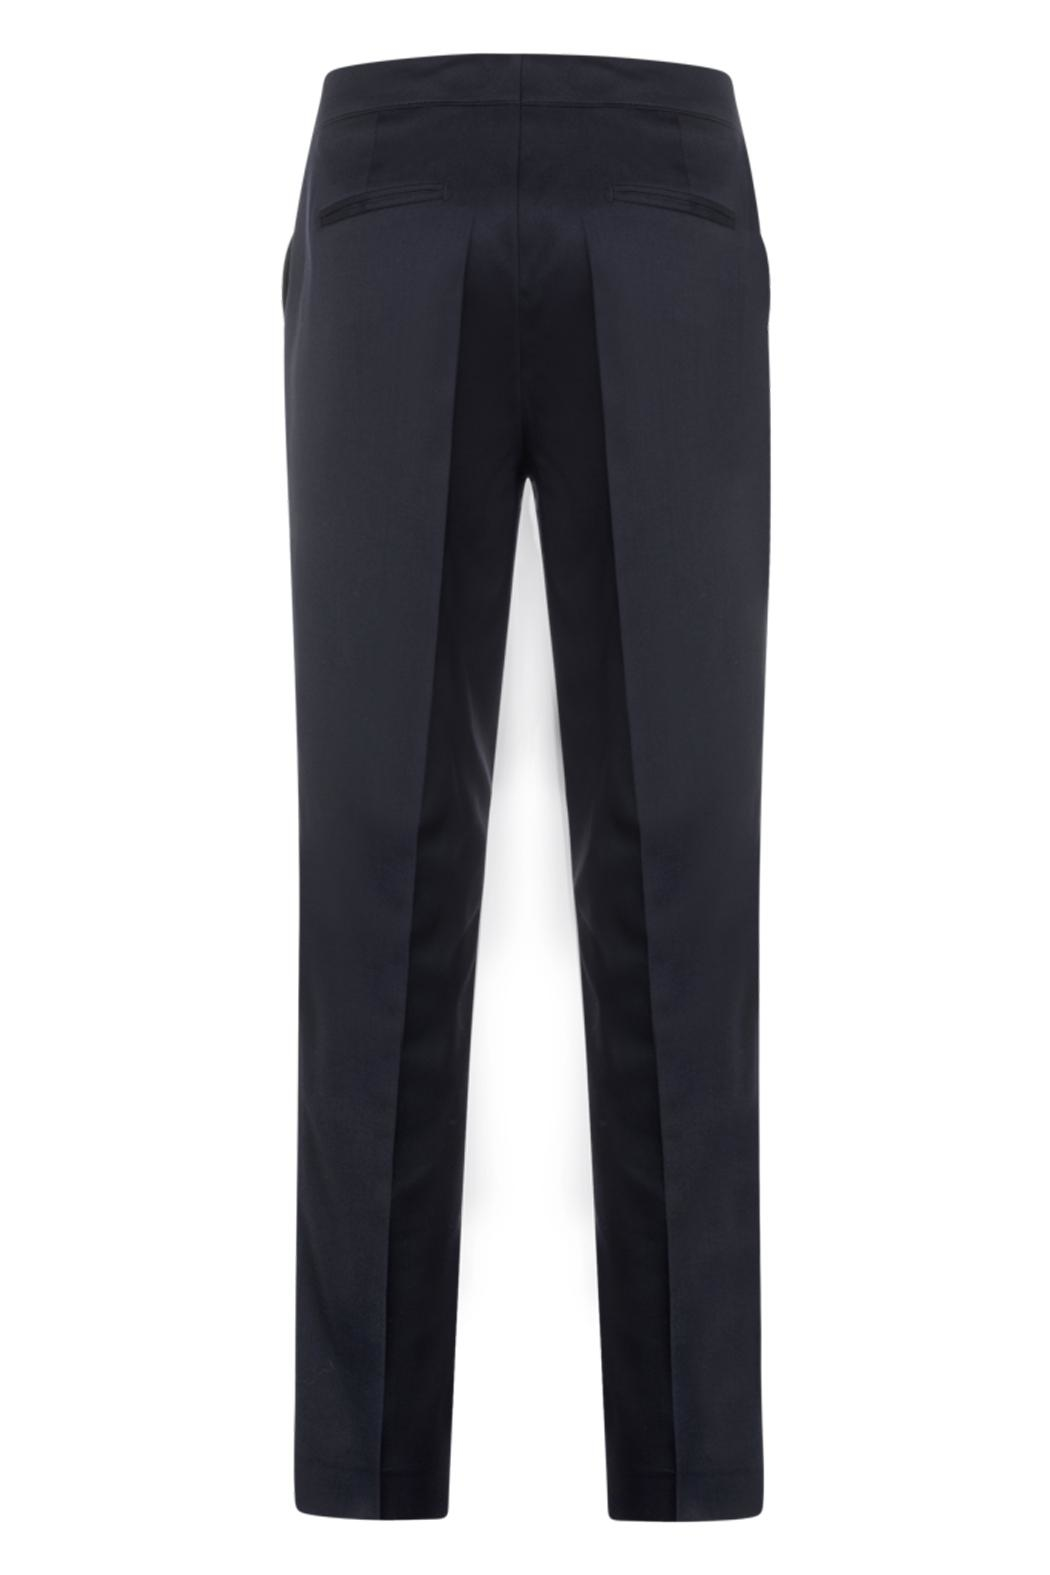 RHUMAA Tailored Trouser - Front Full Image